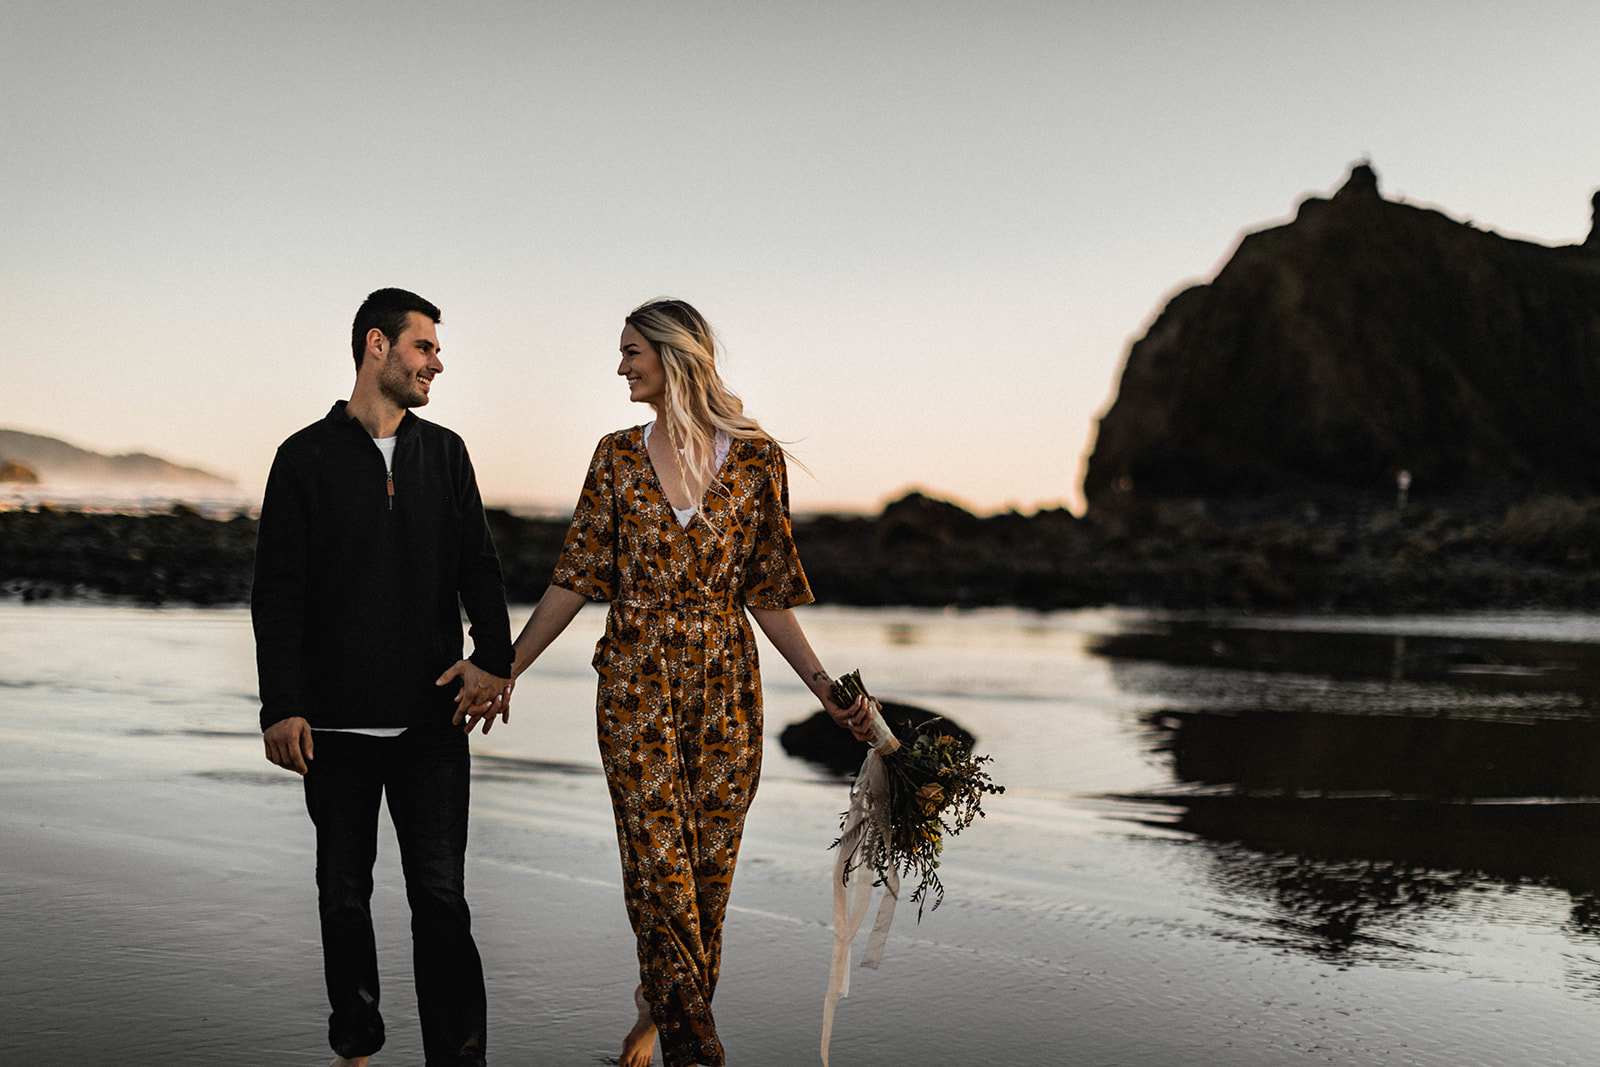 Cannon Beach Elopement - Portland Oregon Wedding and Elopement Photographer